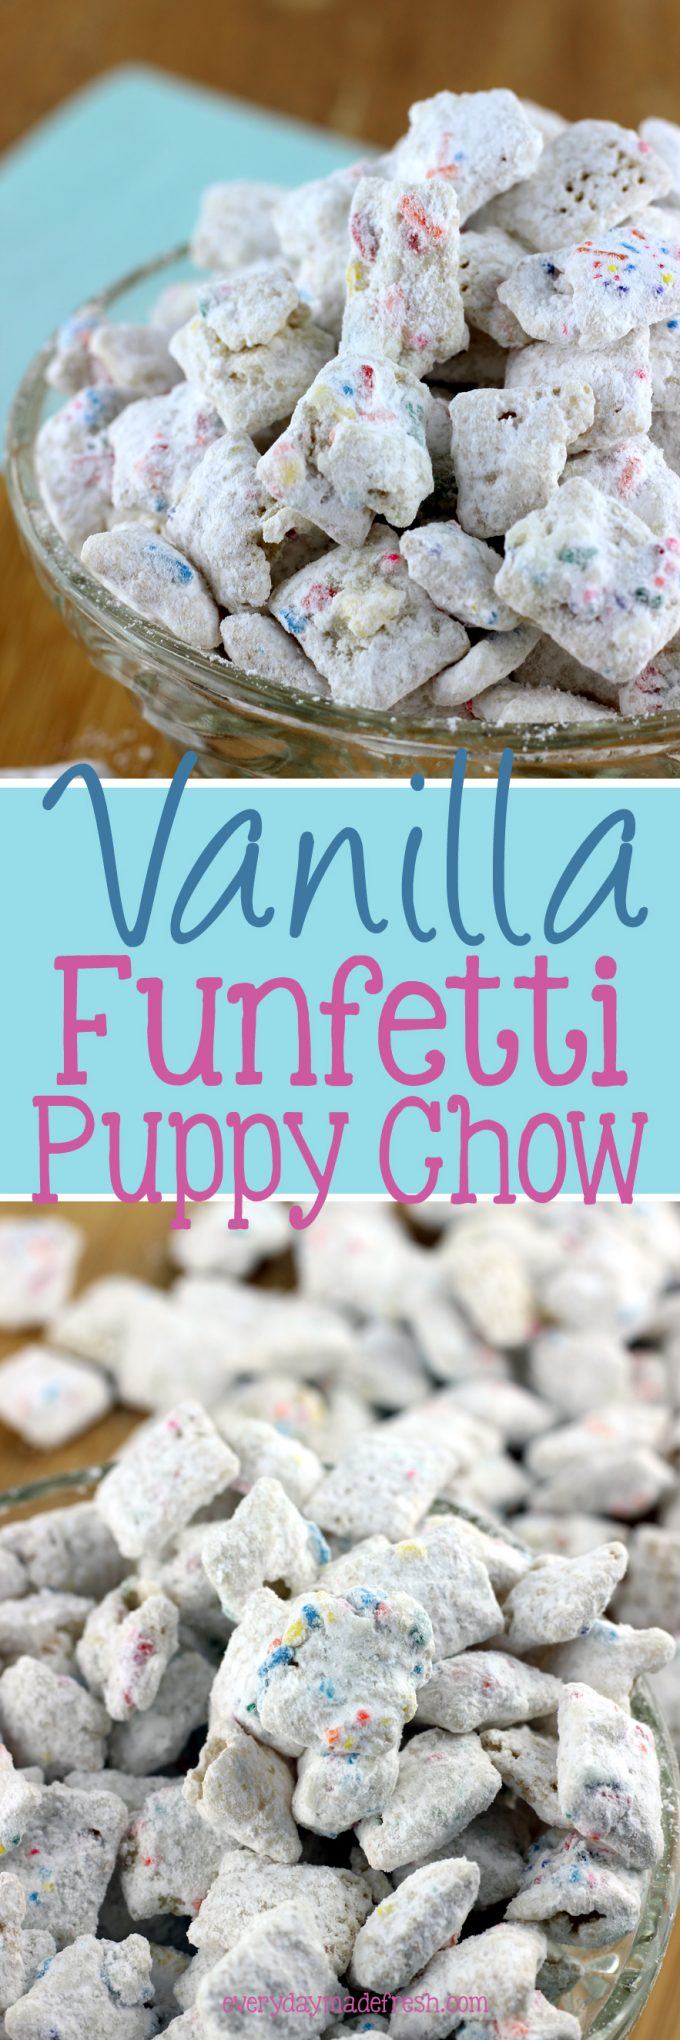 Vanilla Funfetti Puppy Chow is the ideal snack when you're craving something sweet and crunchy!| EverydayMadeFresh.com